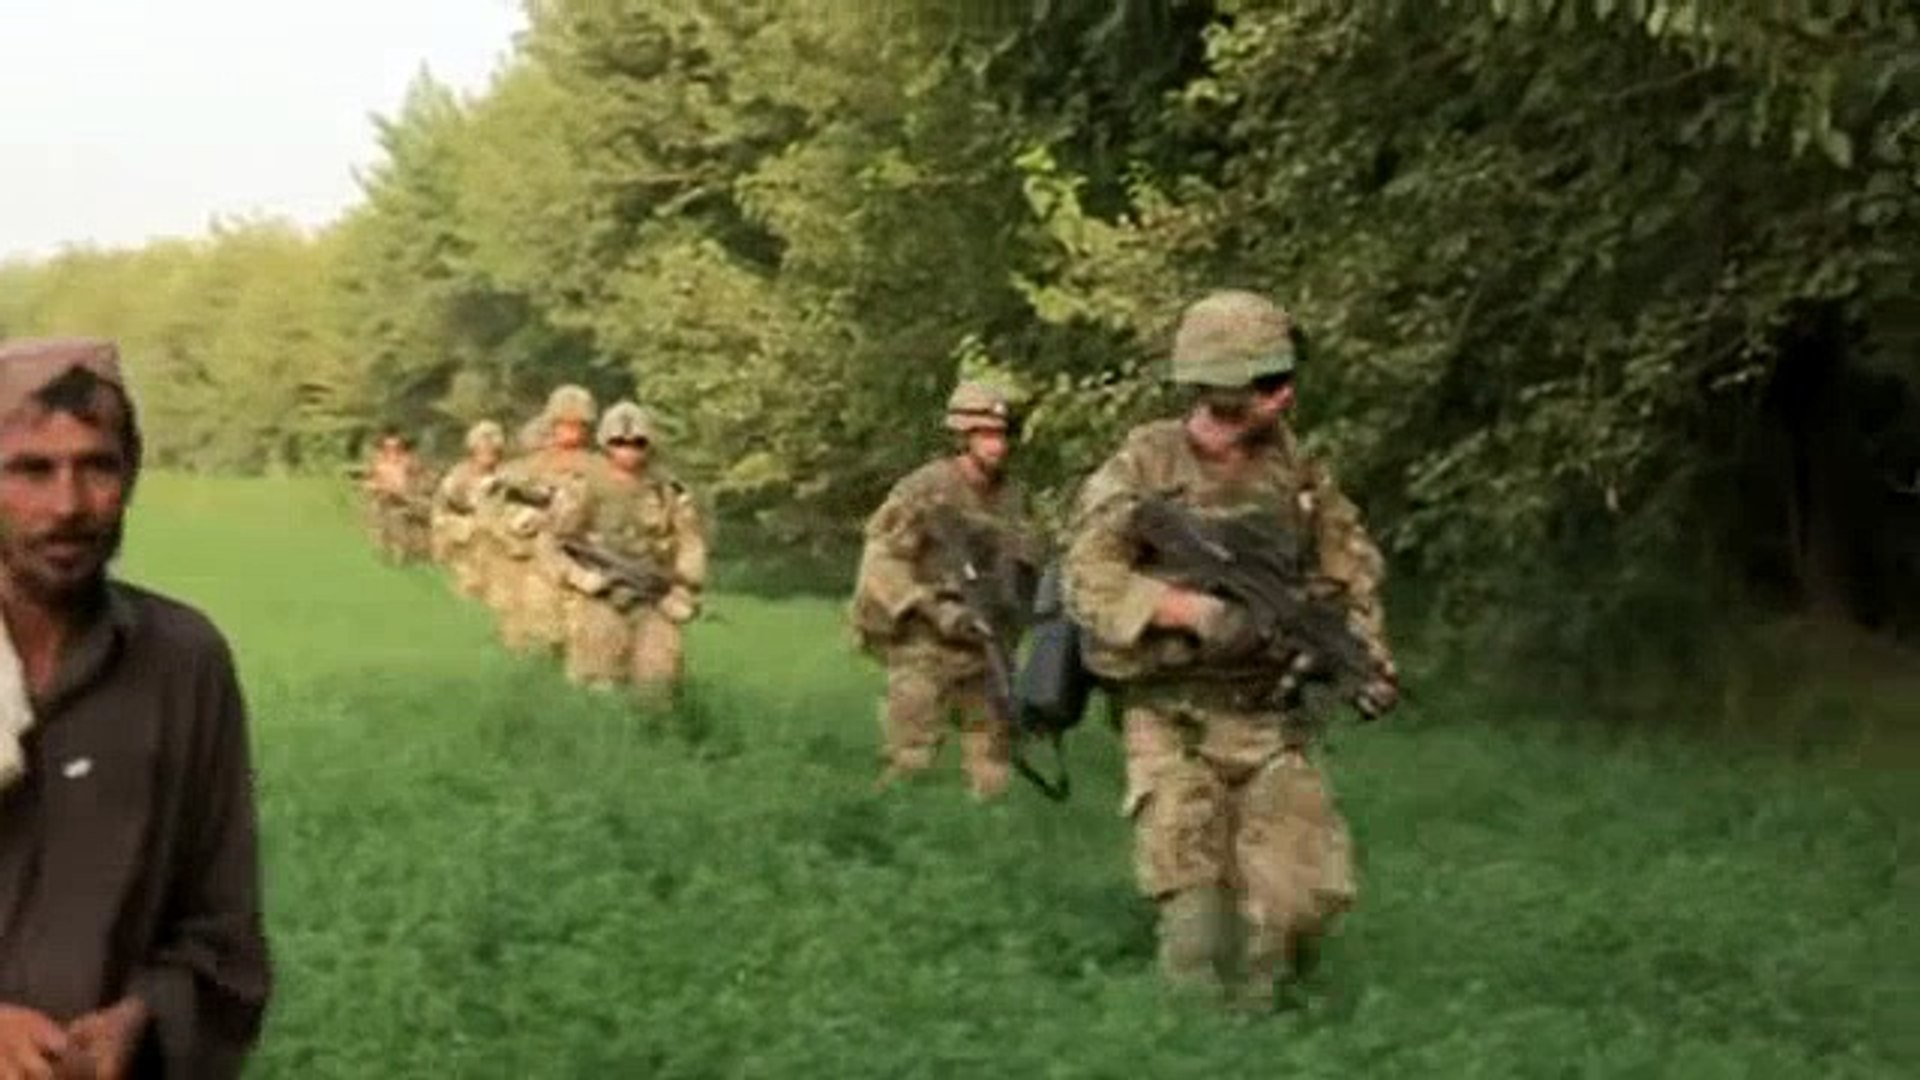 Royal Marines Mission Afghanistan S01 E06